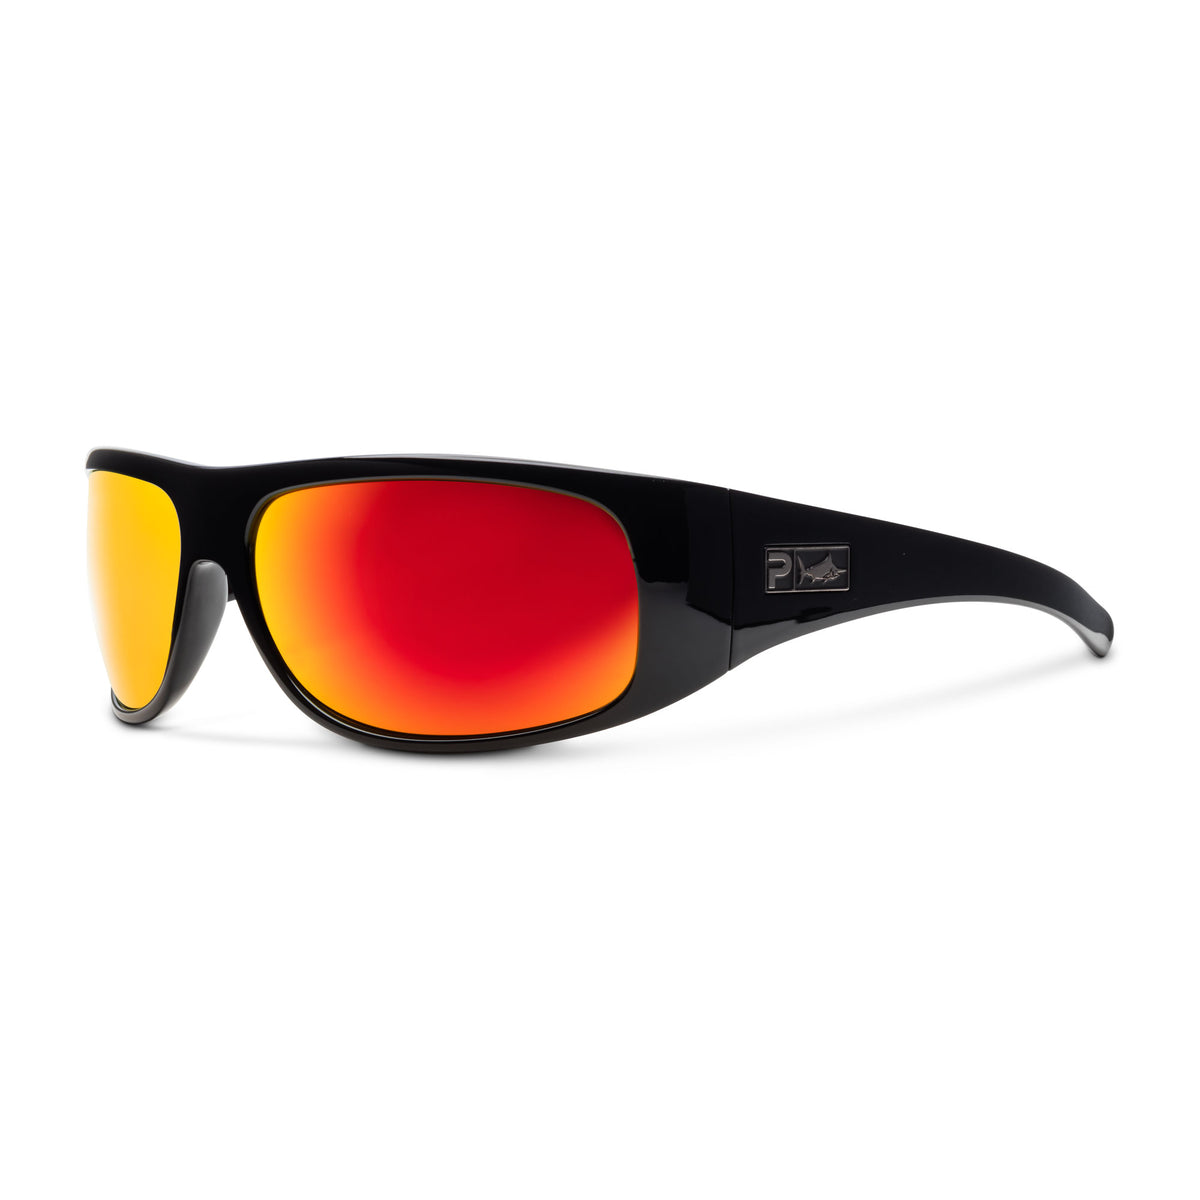 Legend - Polarized Polycarbonate Lens Big Image - 4